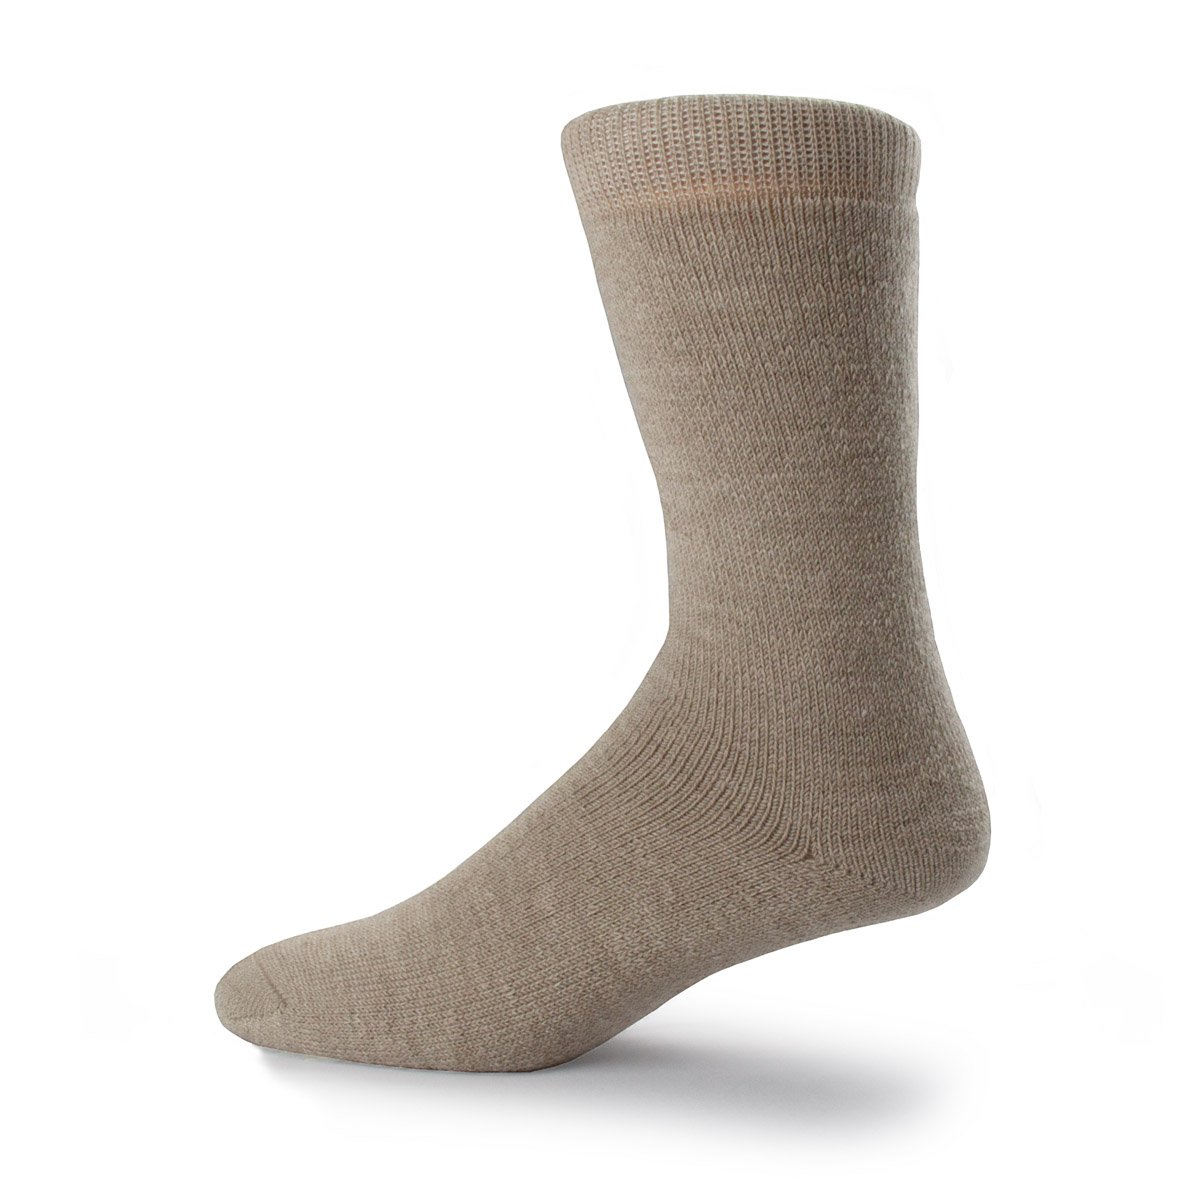 Minus33 Merino Wool Workhorse Multisport 3/4 Length Sock MINUJ